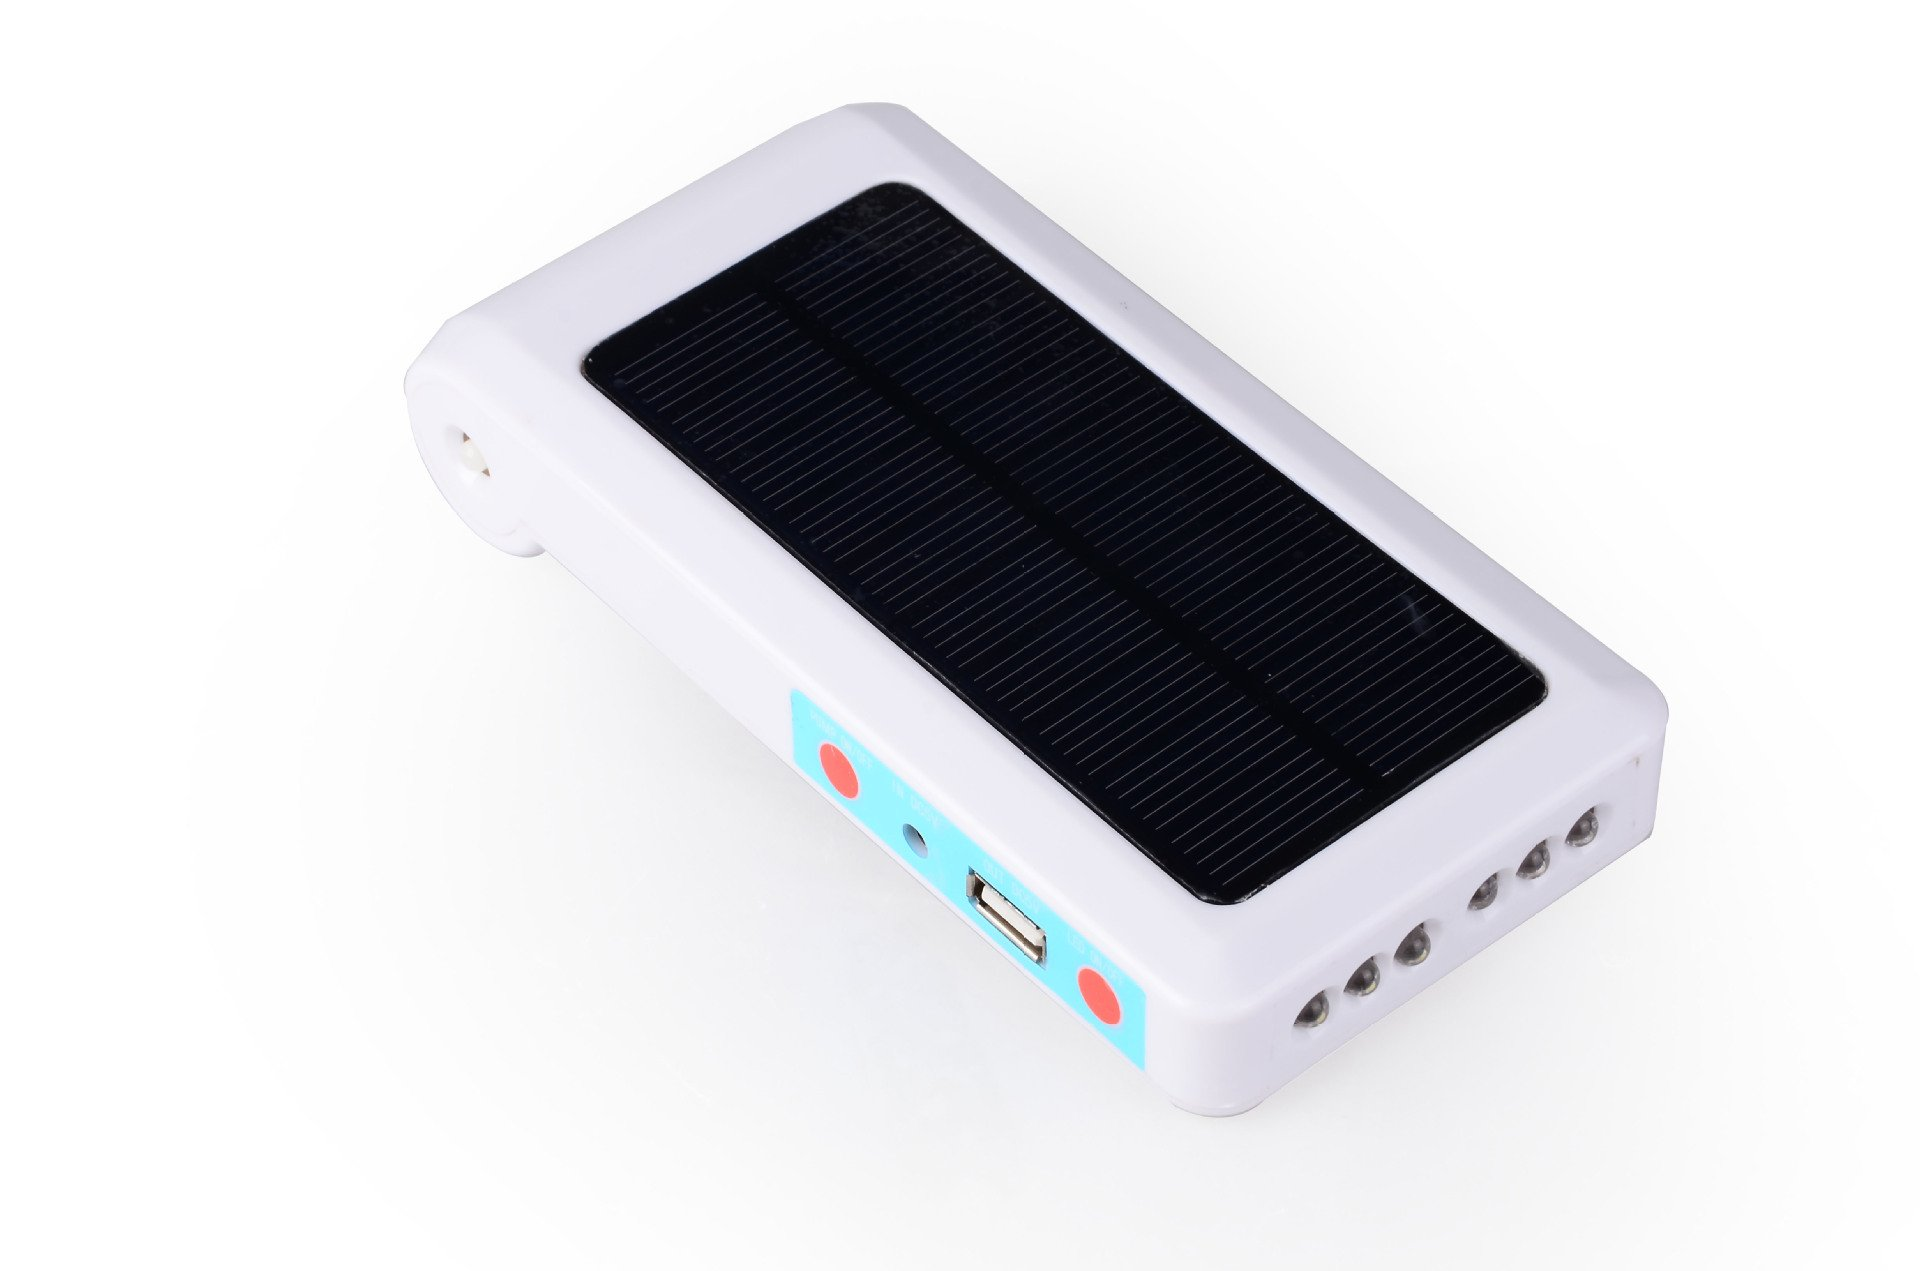 RONSHIN 6LED Solar-powered USB Charging Portable Practical Oxygen Pump for Outdoor Fishing Fish Tank